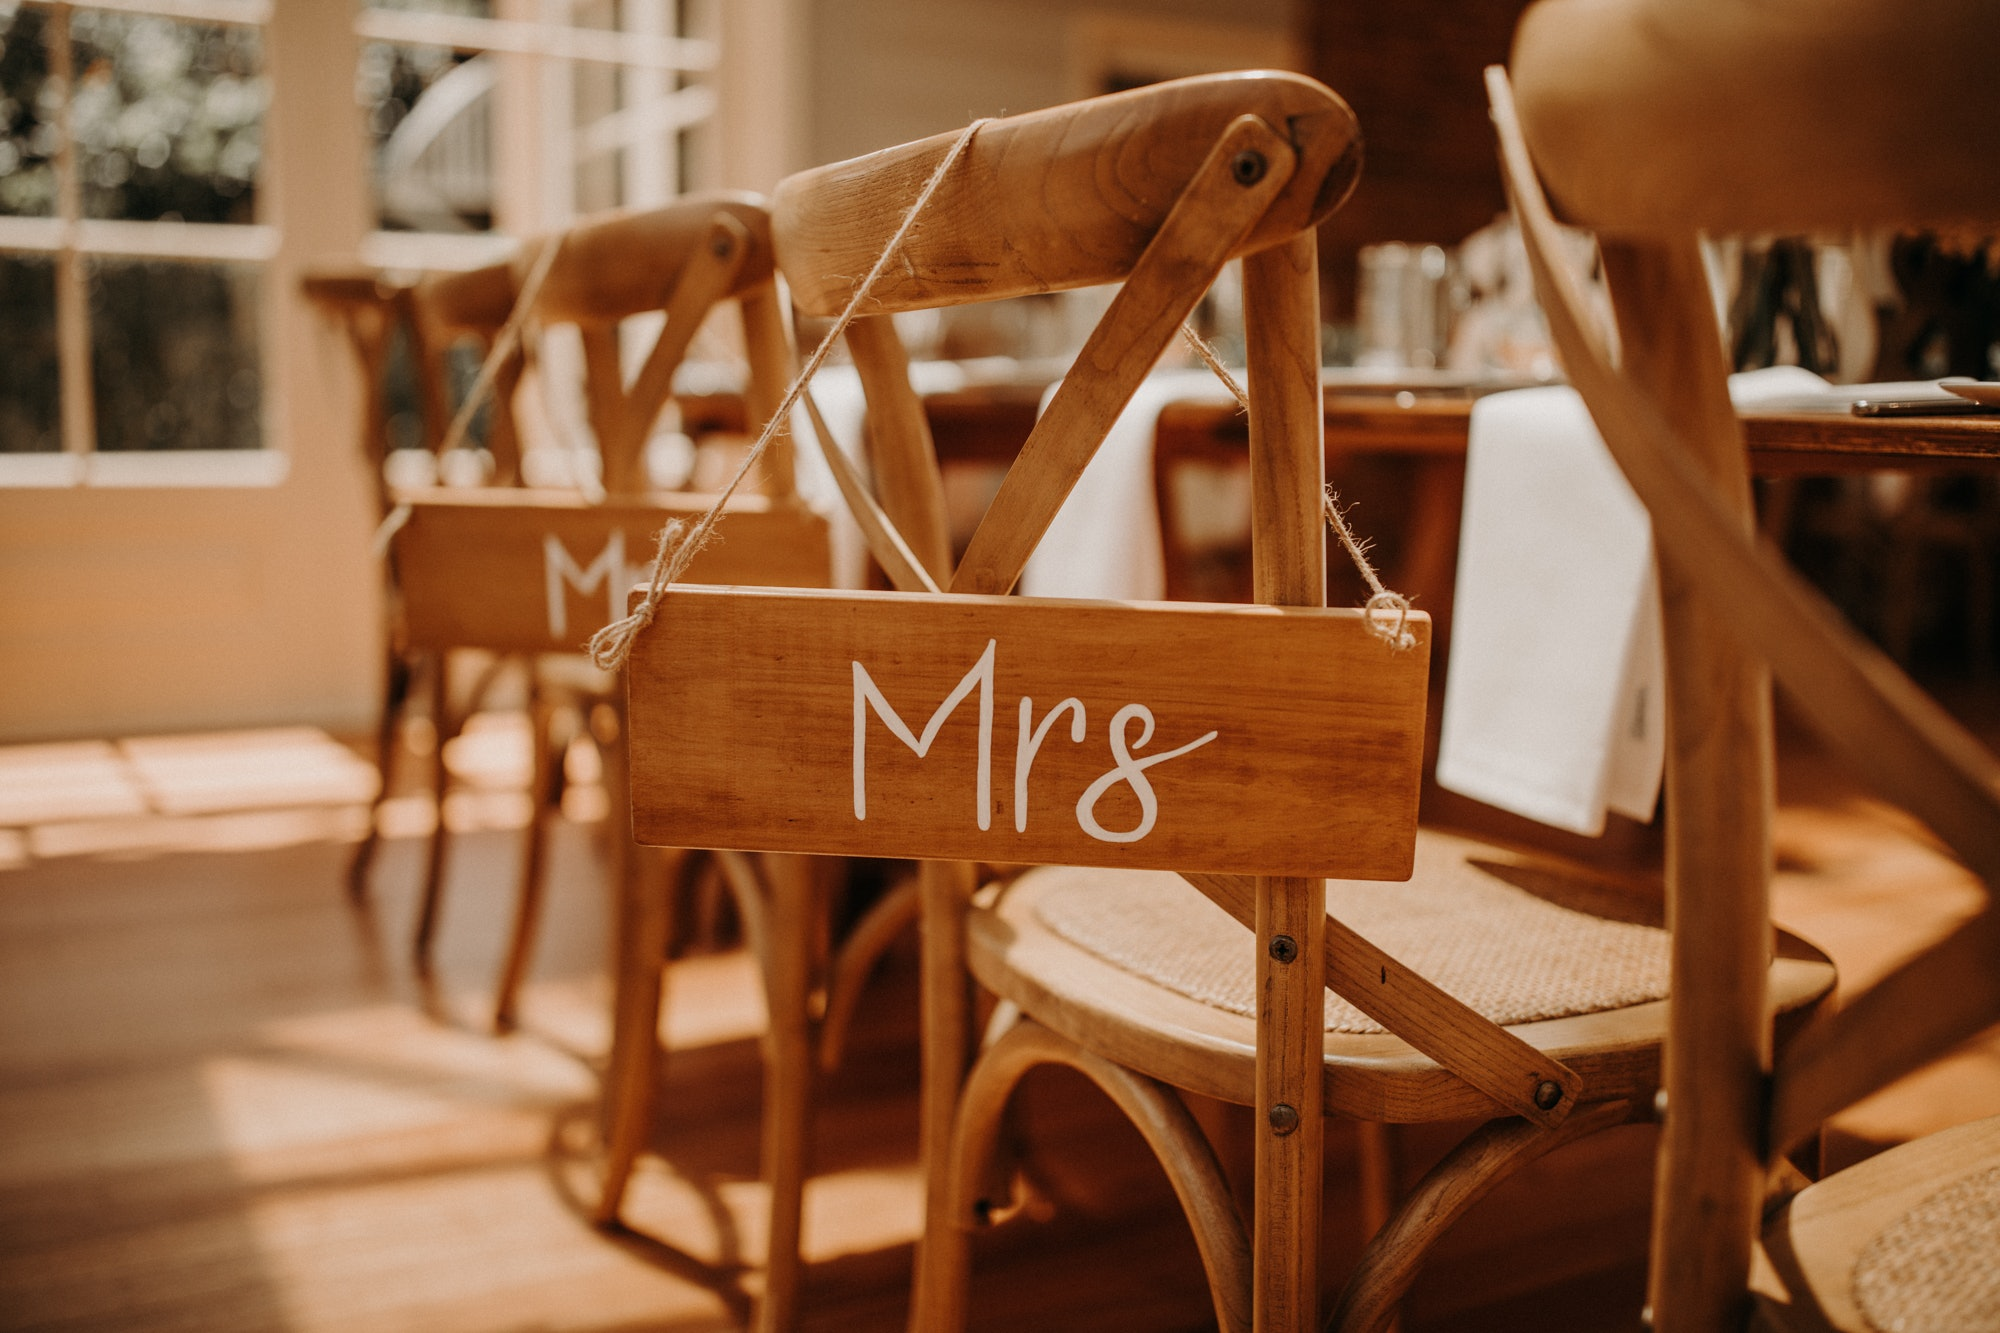 'Mr' and 'Mrs signs on the back of wooden chairs